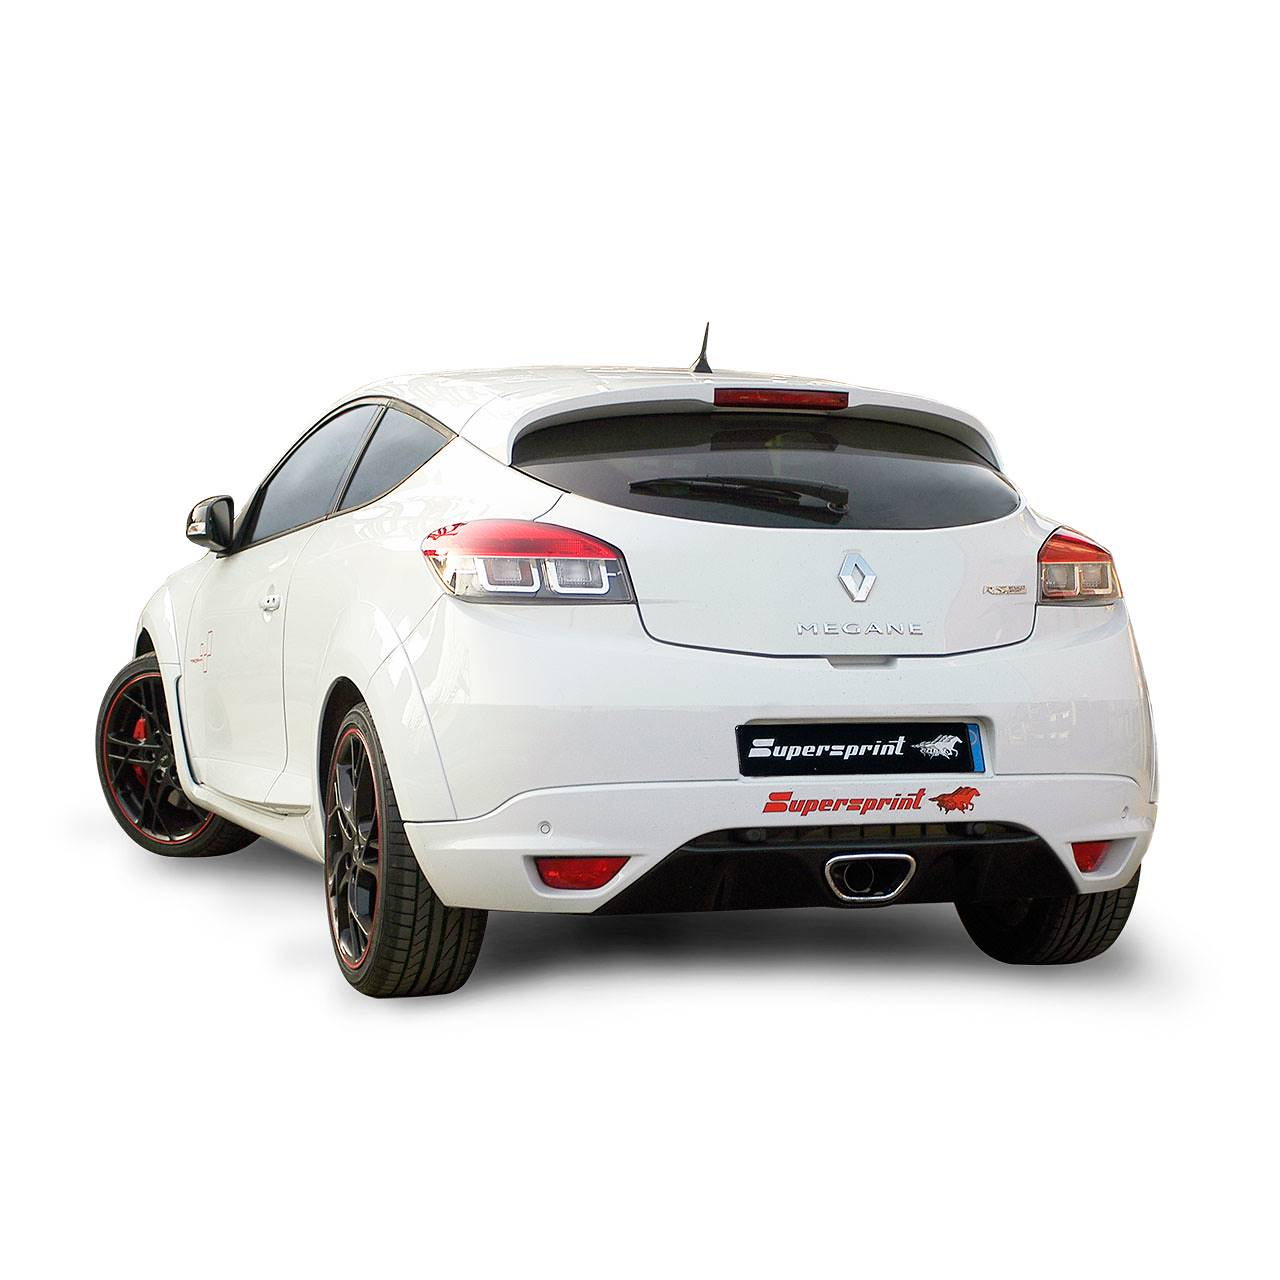 performance sport exhaust for renaultsport megane 265 renault megane iii coup 2 0 rs trophy. Black Bedroom Furniture Sets. Home Design Ideas